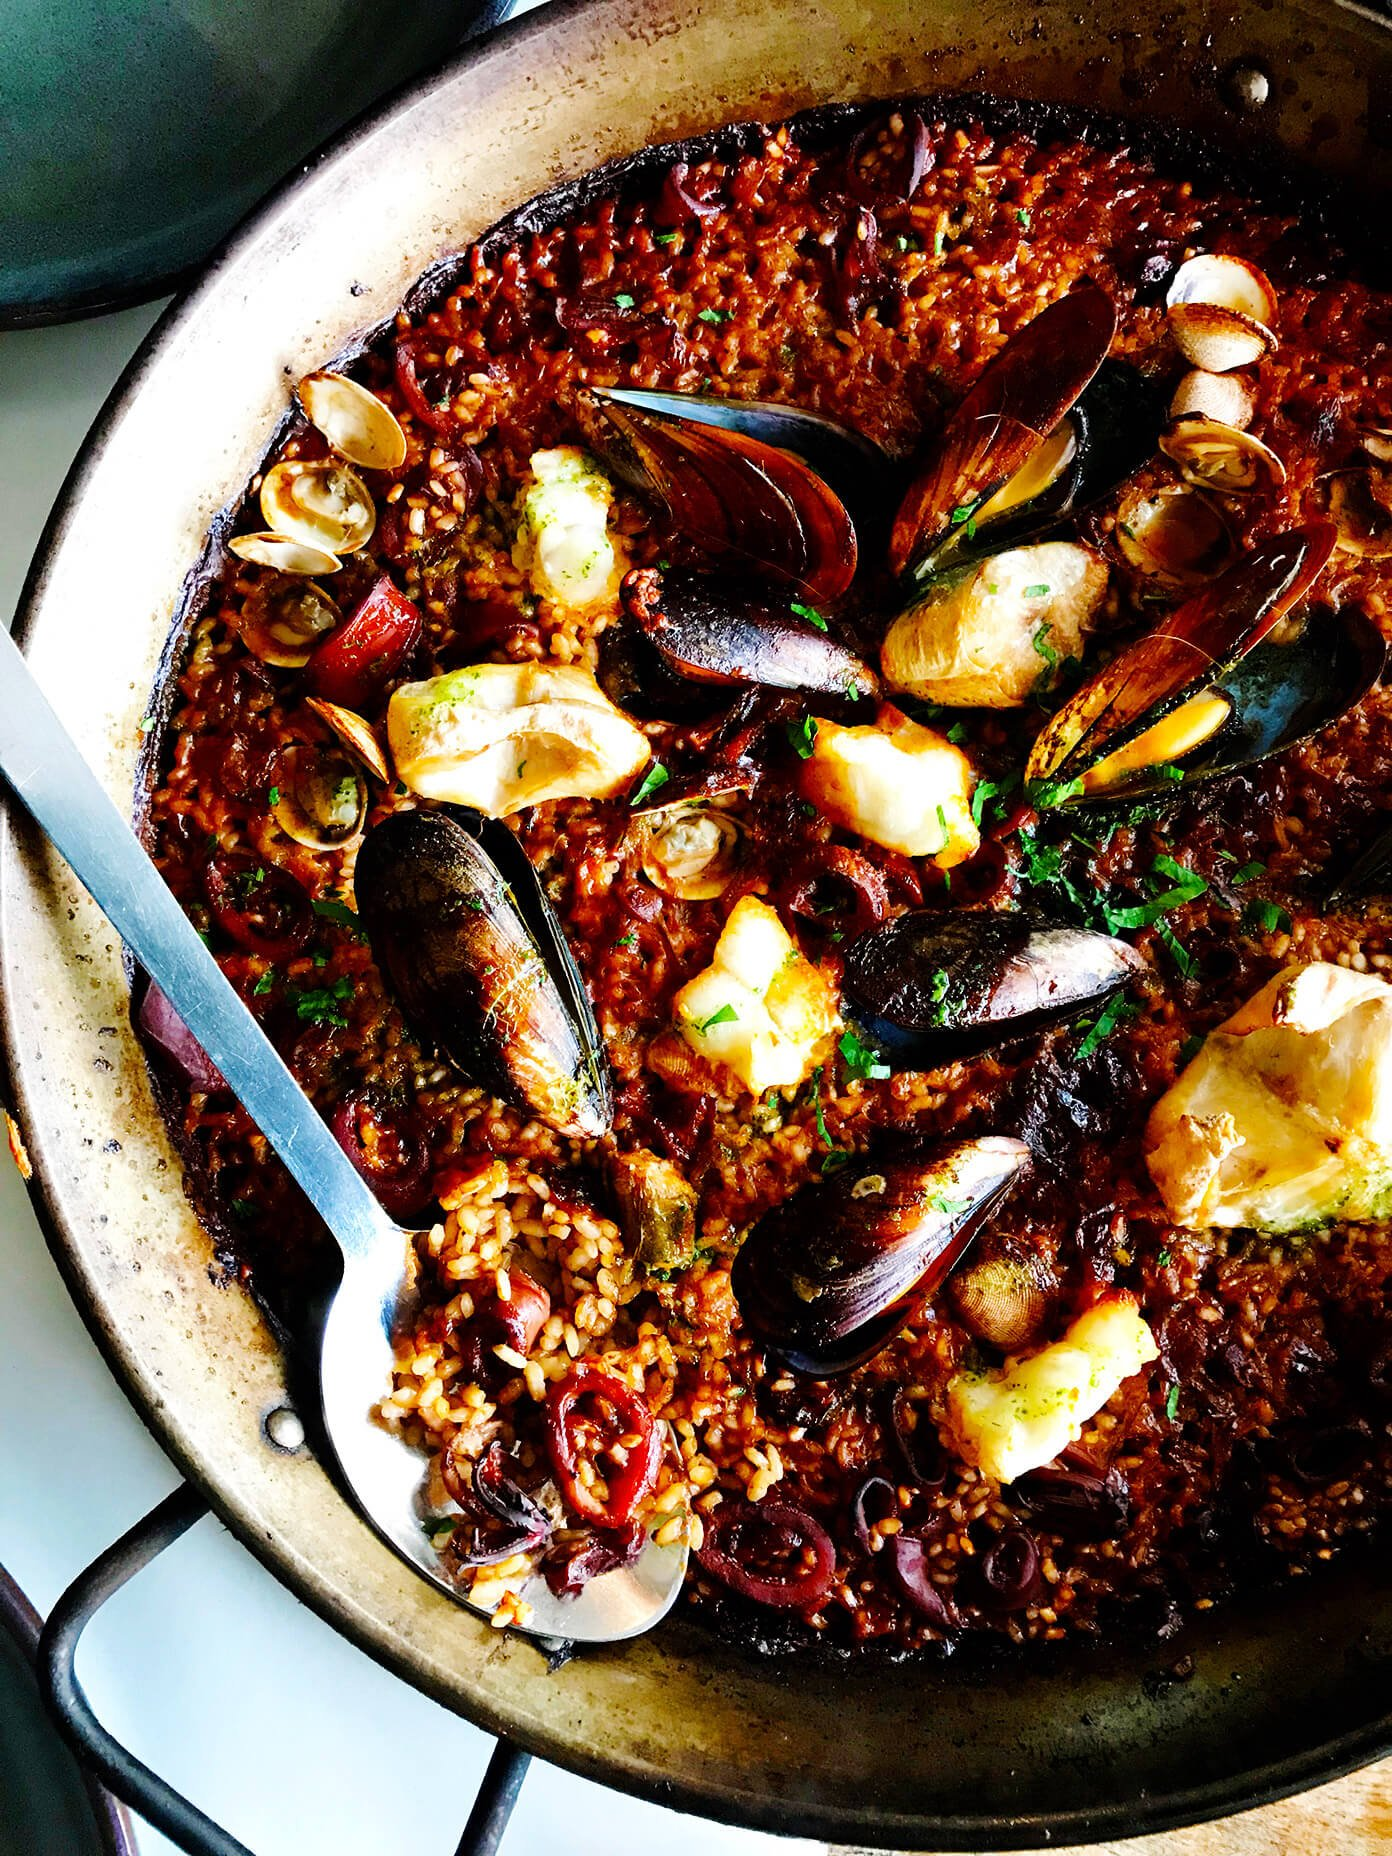 Best Paella In Barcelona | Gimme Some Barcelona Travel Guide